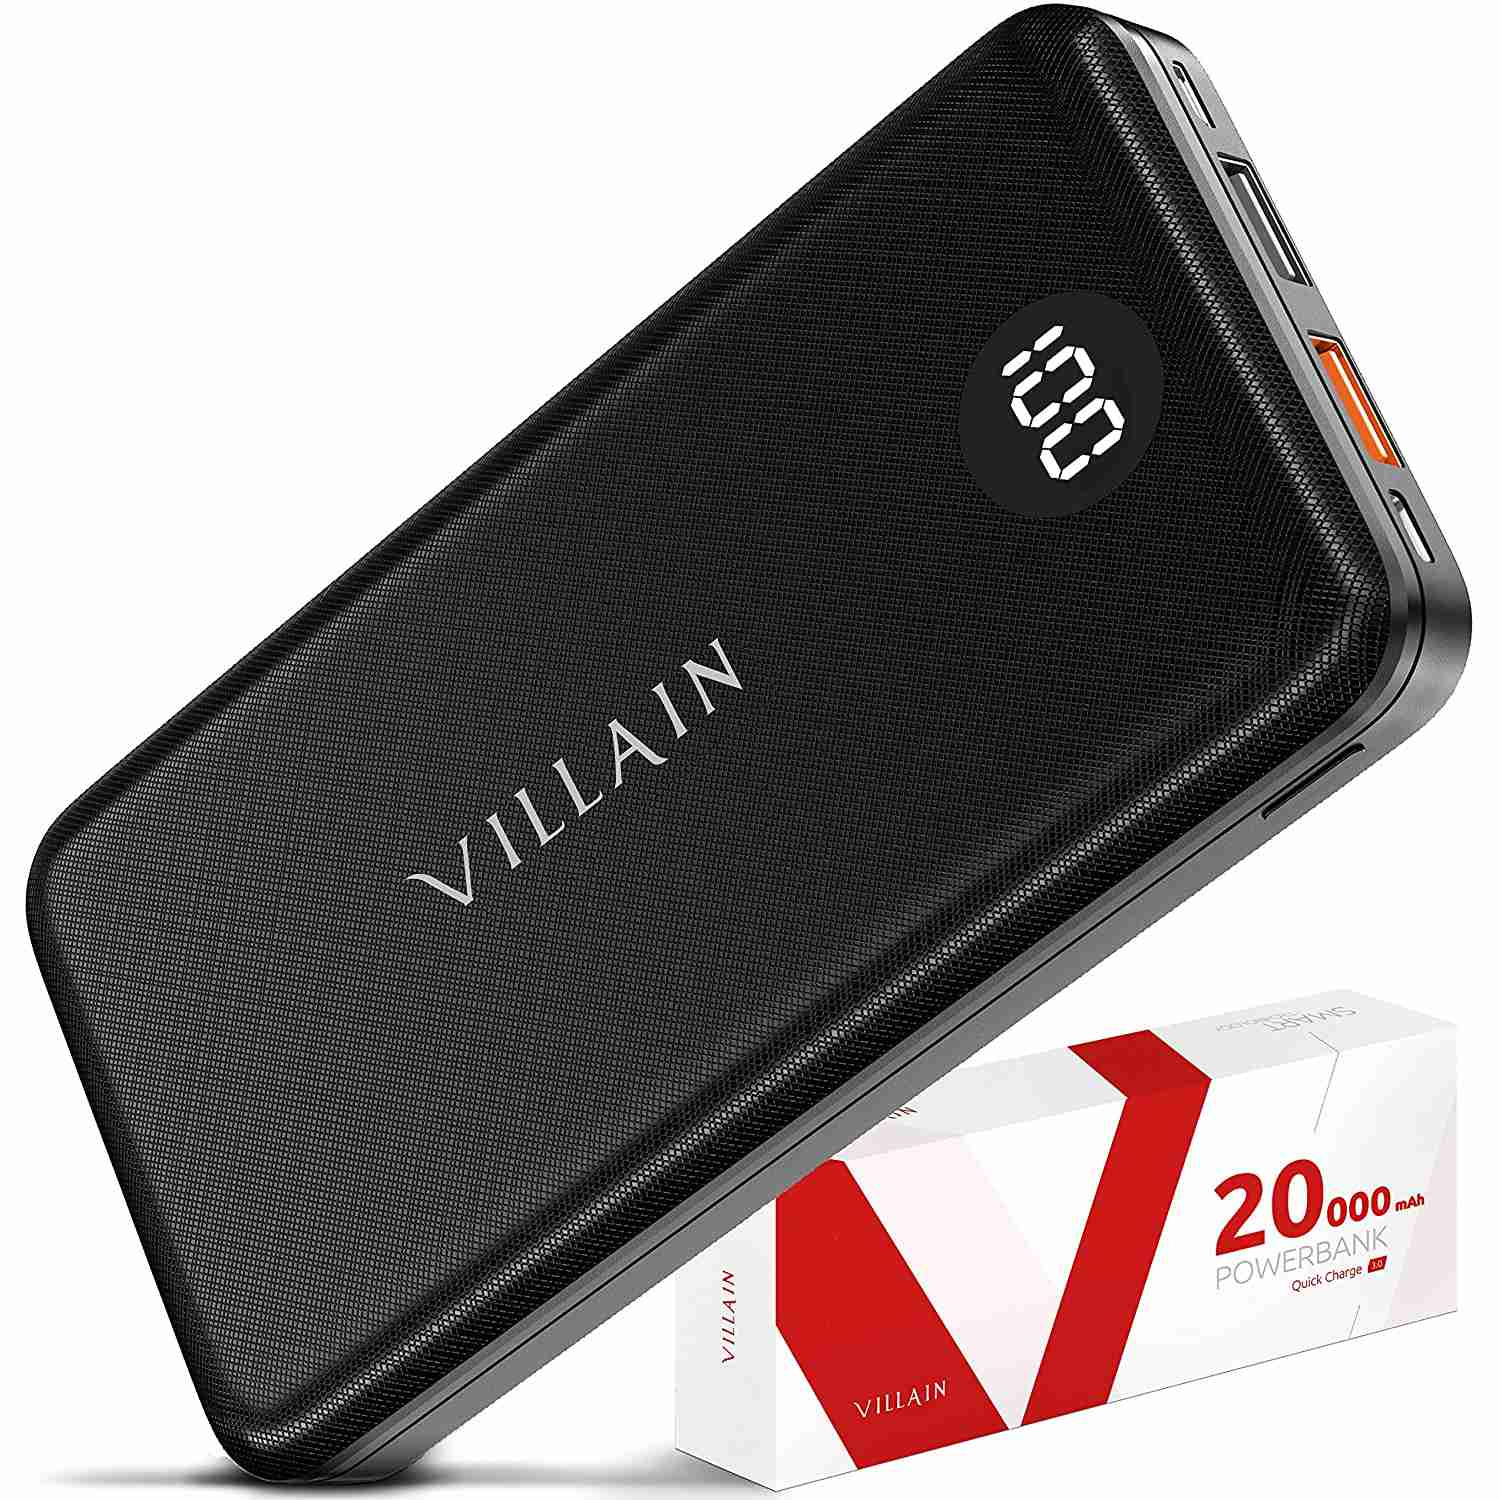 power-bank with cash back rebate